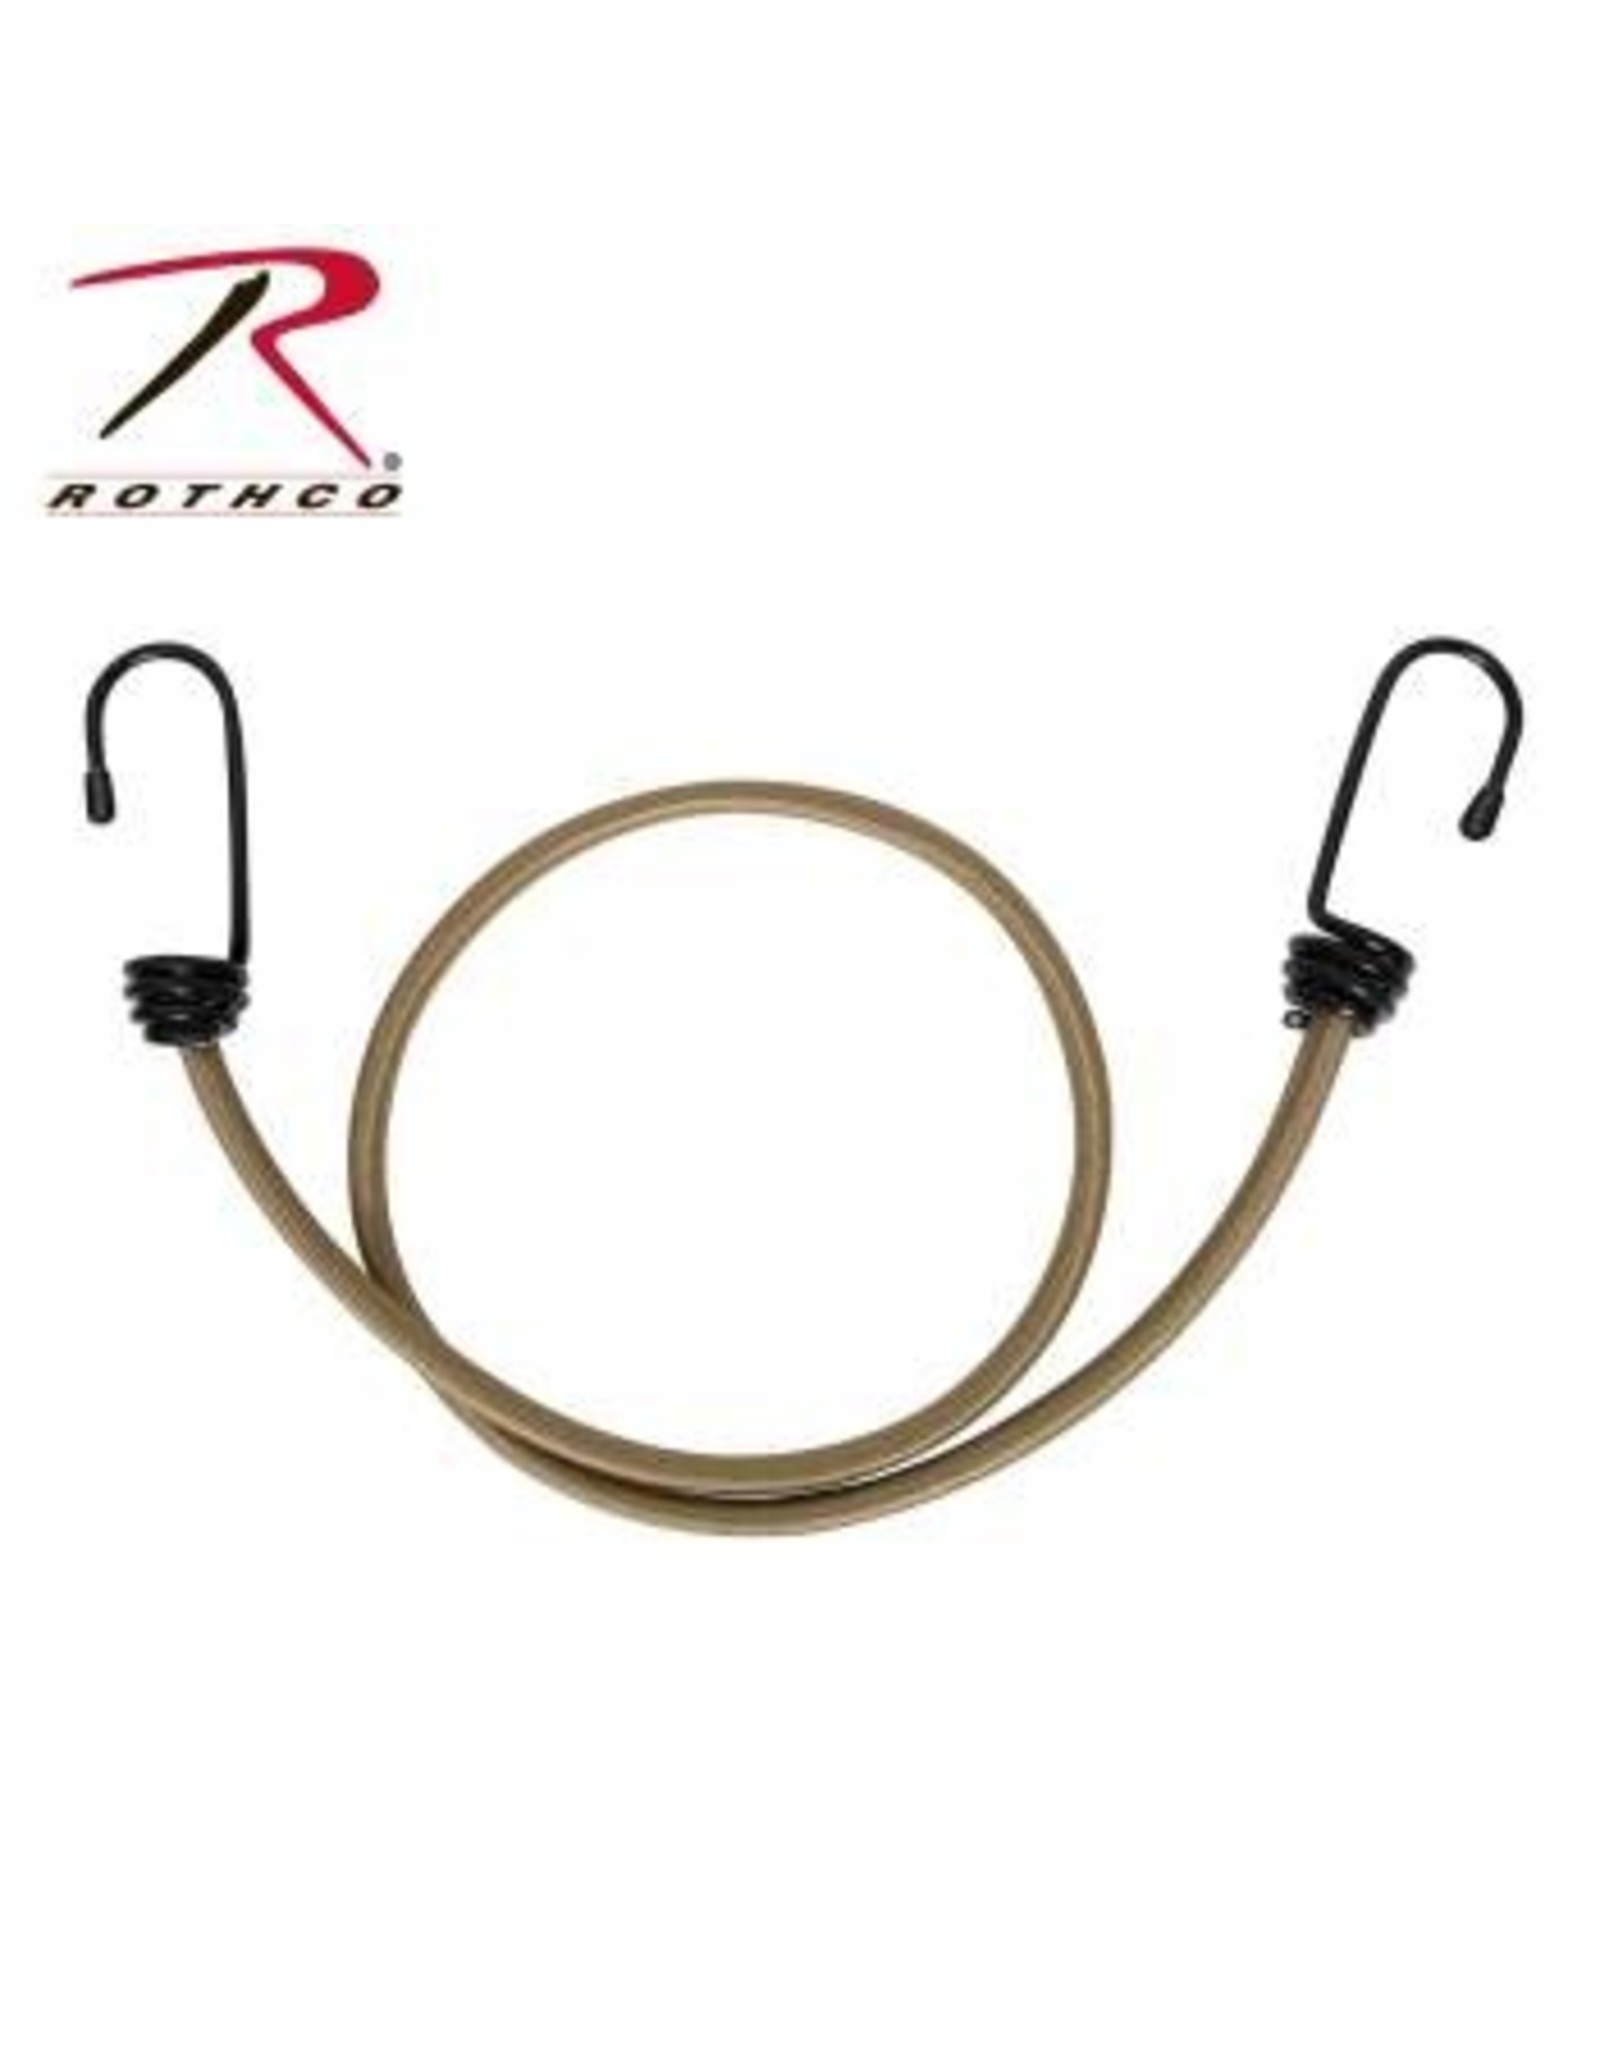 """ROTHCO 4 PACK OF 30"""" BUNGEE CORD -COYOTE"""